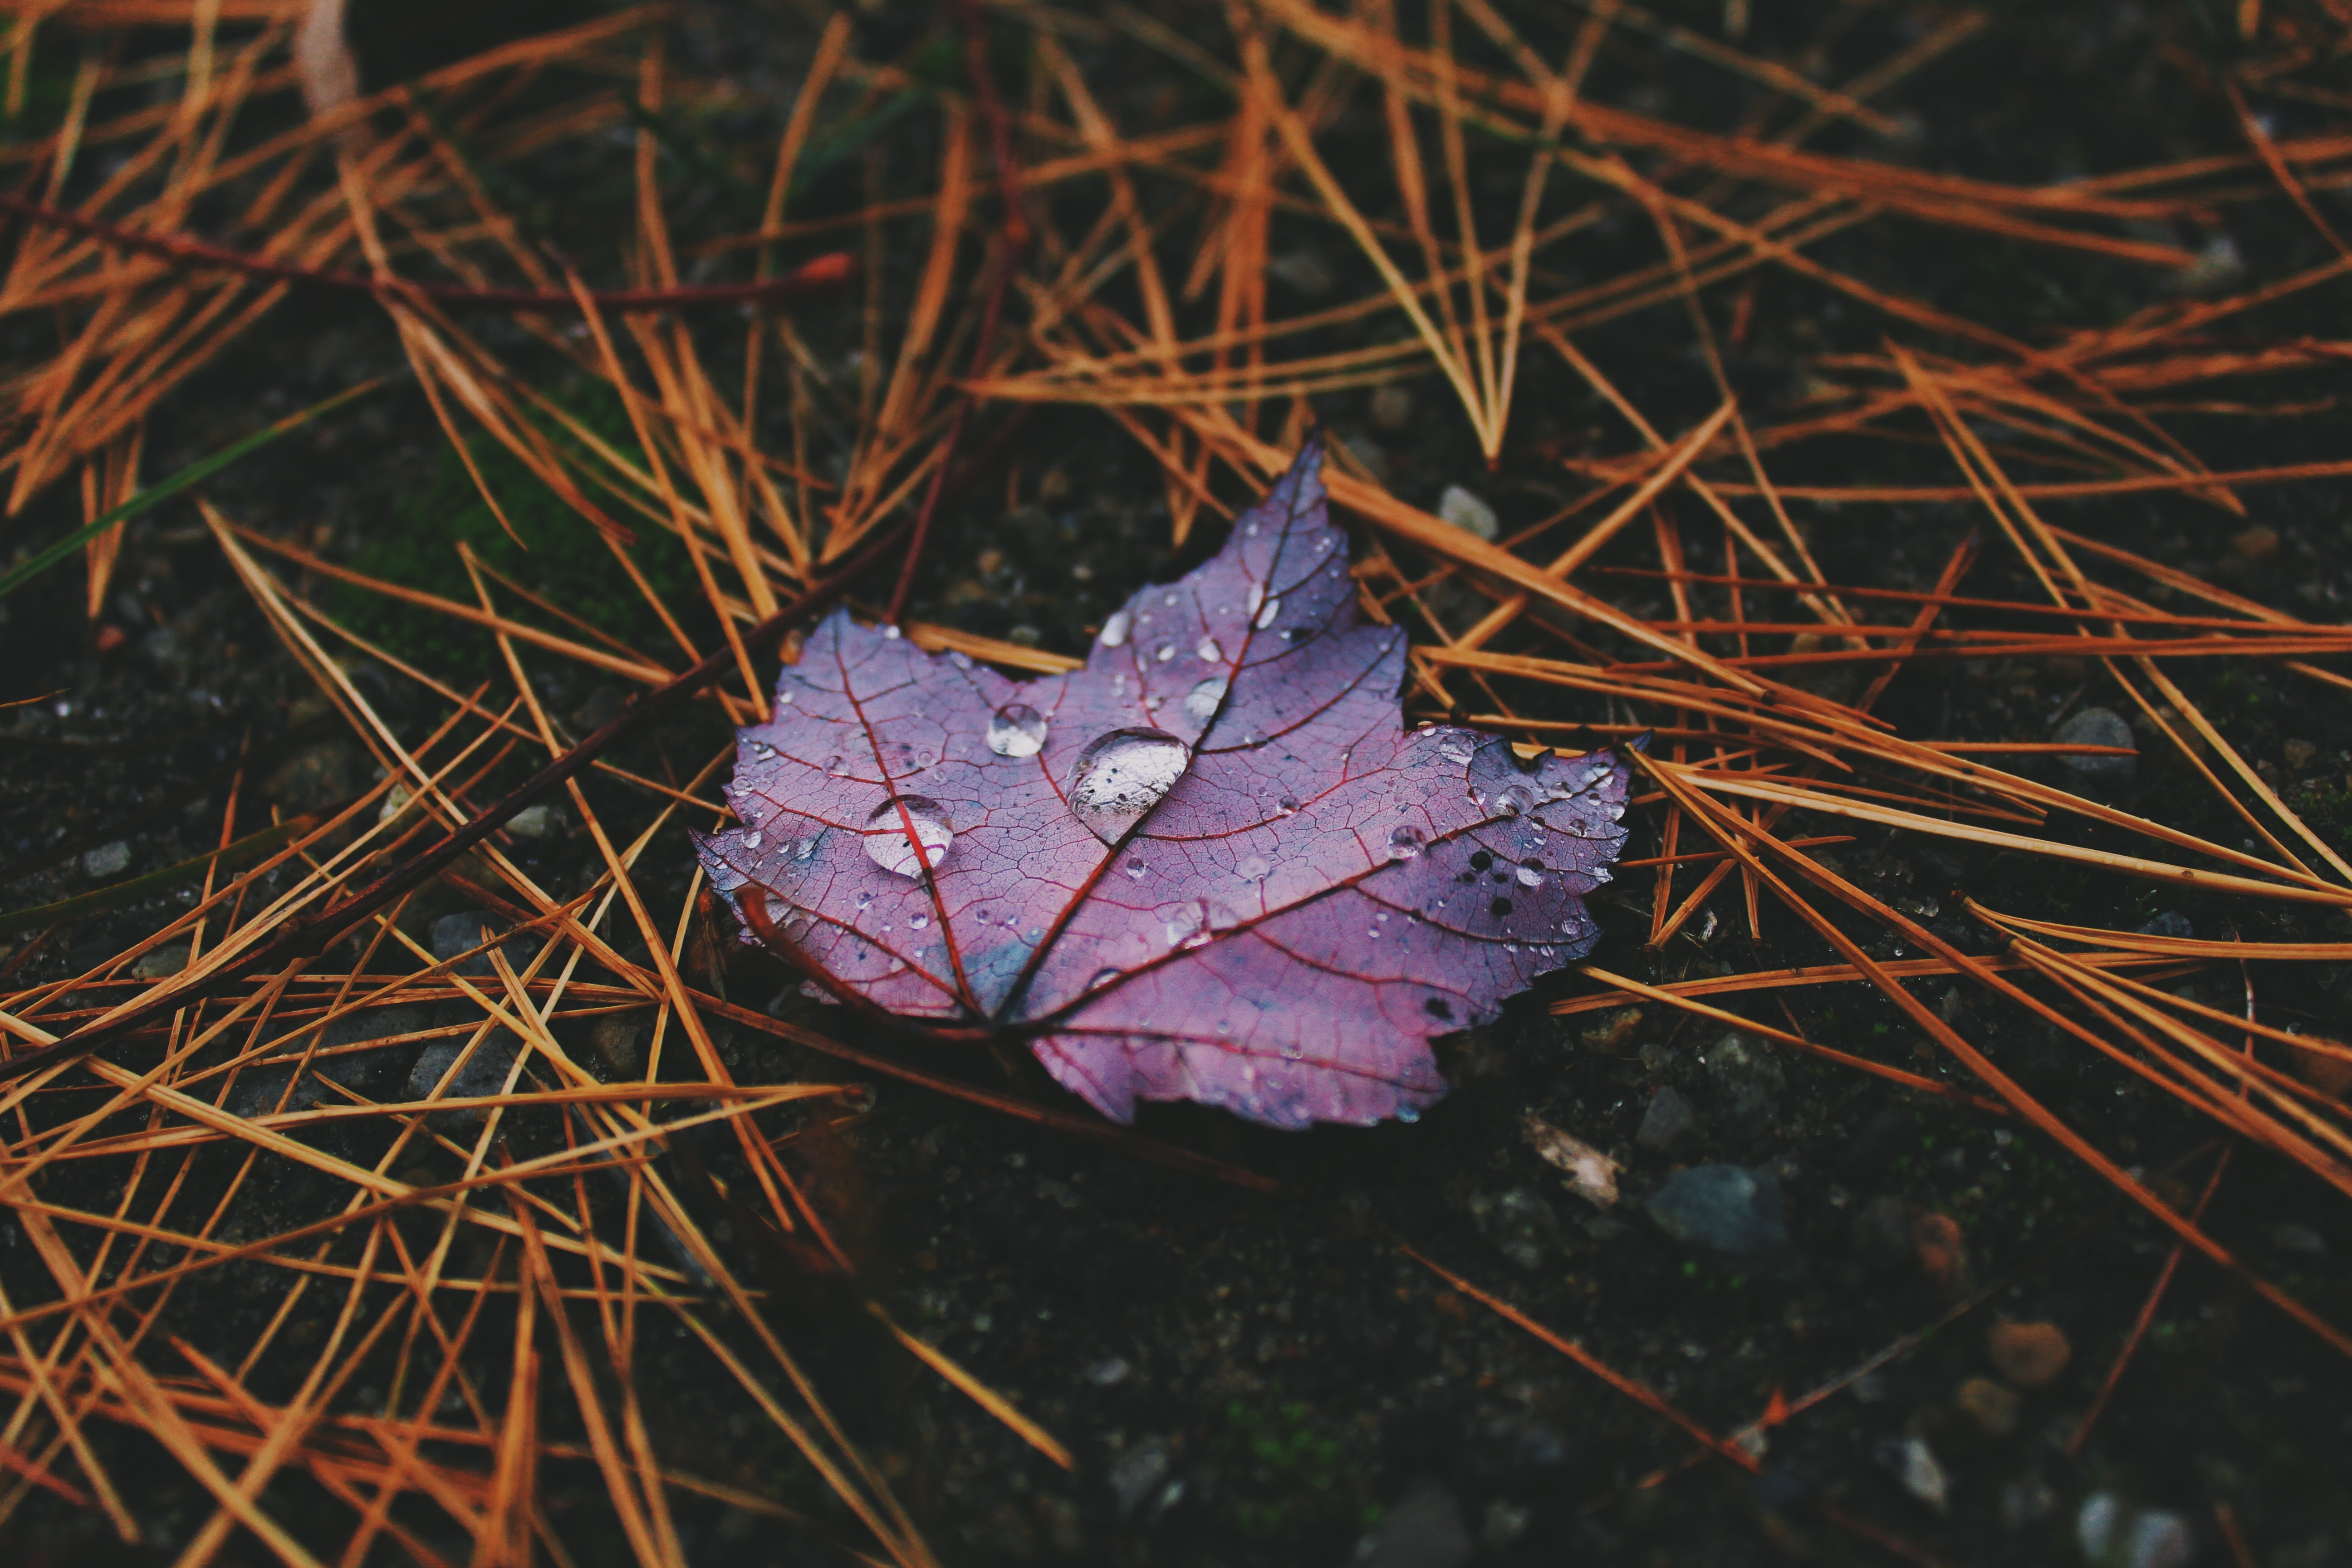 red plant leaf with water droplets on the ground